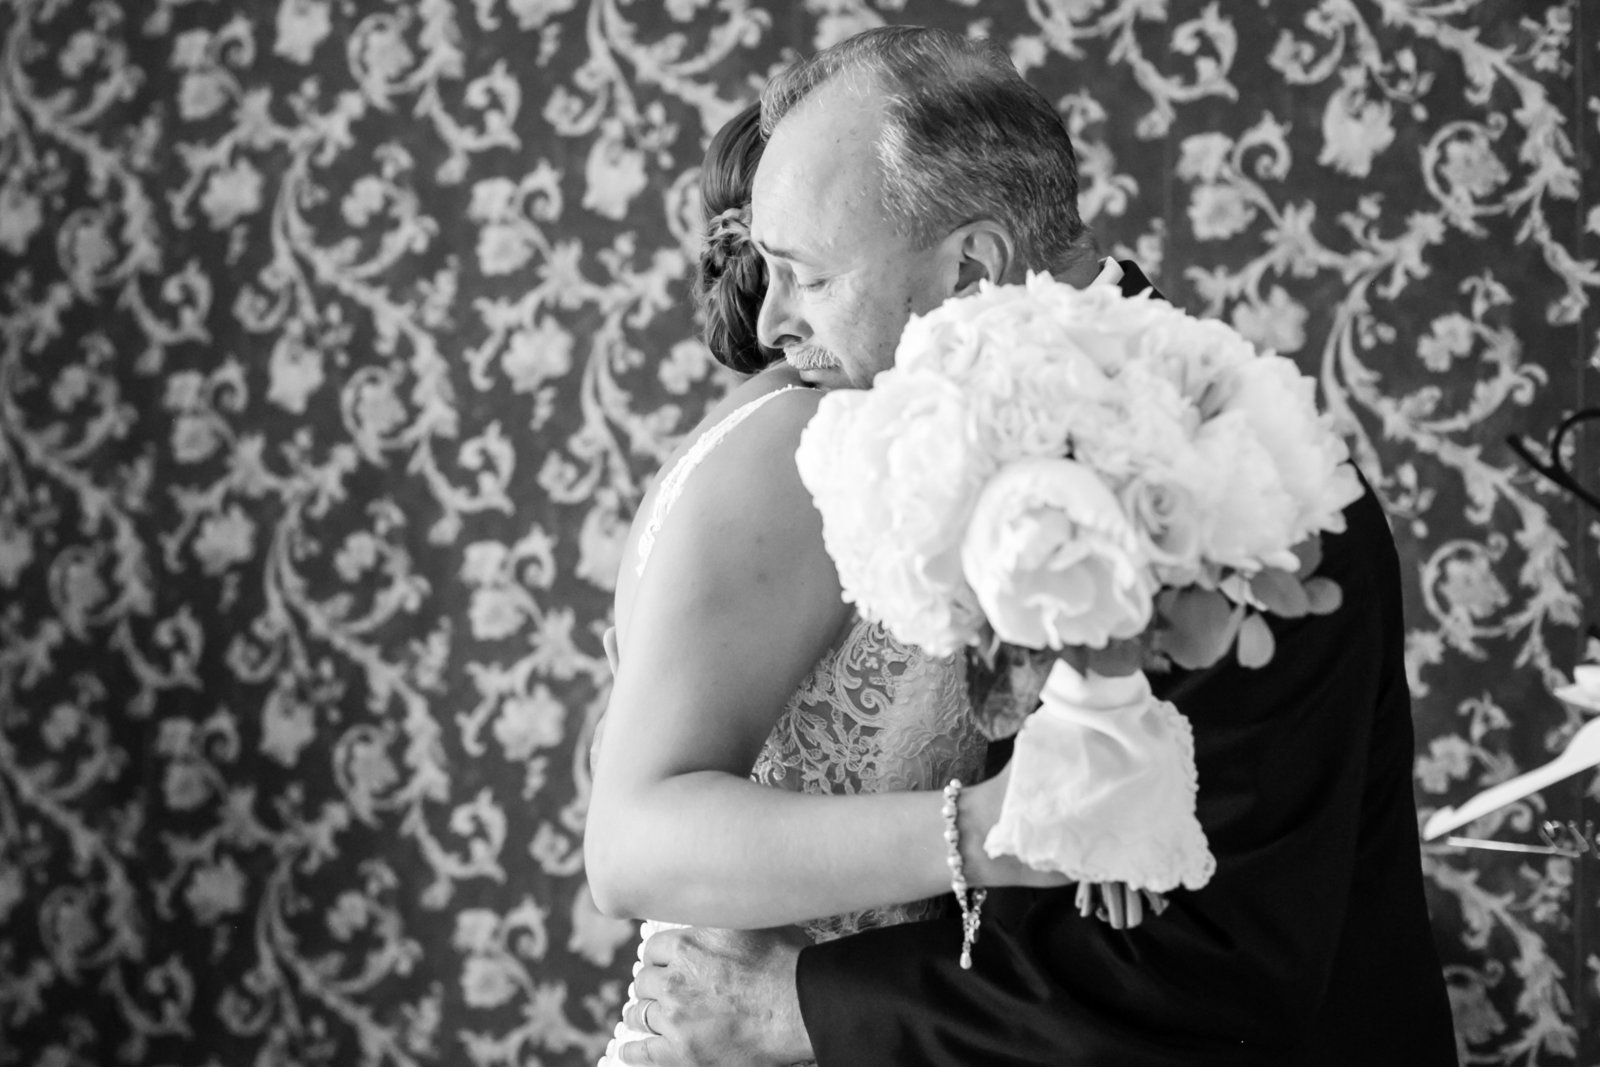 Whitehall_Estate_Wedding_Photographer_Friske145 copy